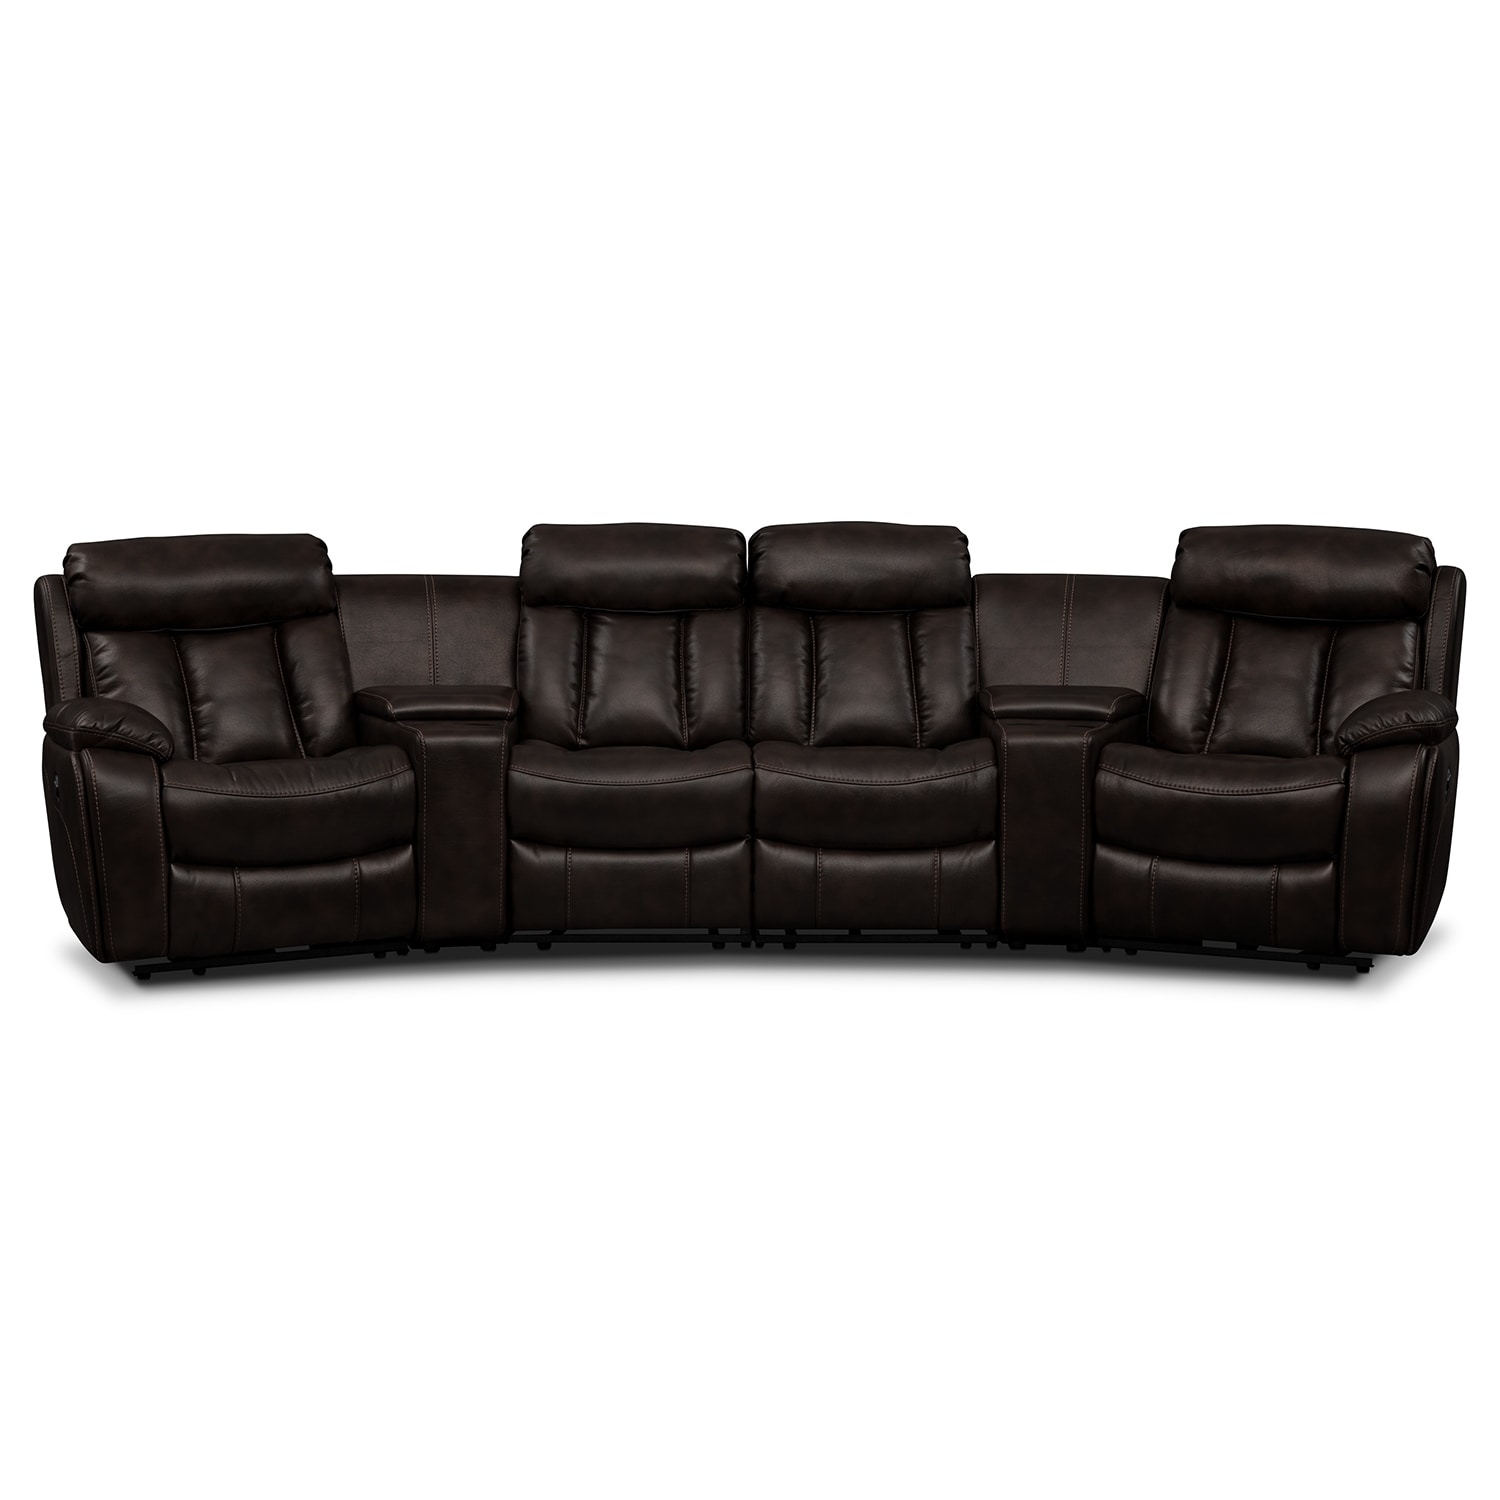 Diablo 7 Piece Power Reclining Sectional with Armless Power Chair